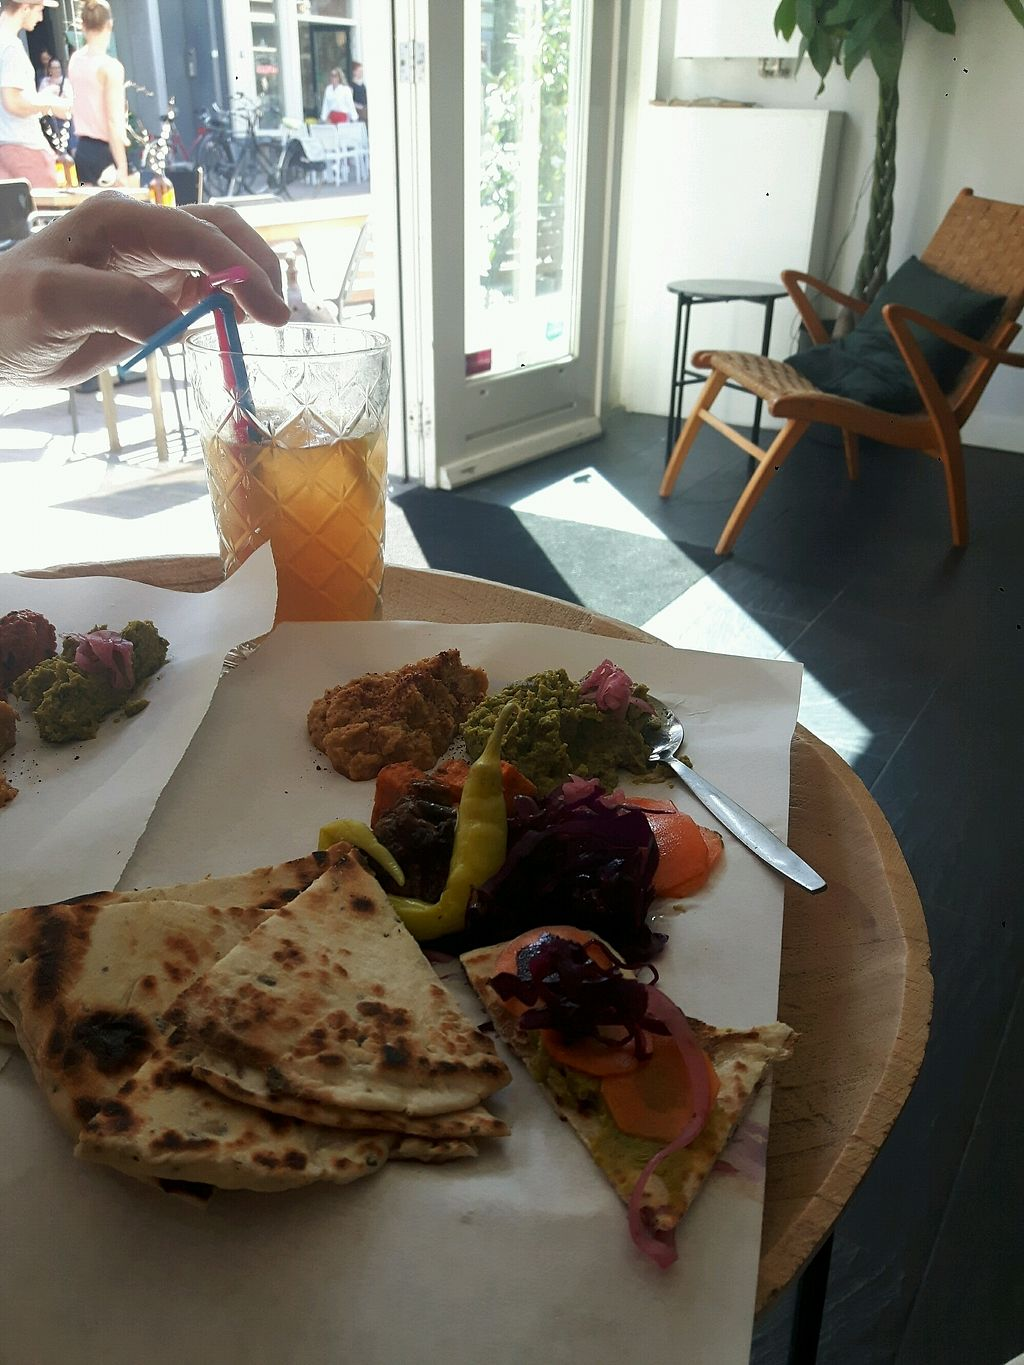 """Photo of Khubz  by <a href=""""/members/profile/westcall"""">westcall</a> <br/>flatbread met vegan dips, groenten en ijsthee <br/> April 18, 2018  - <a href='/contact/abuse/image/117366/387601'>Report</a>"""